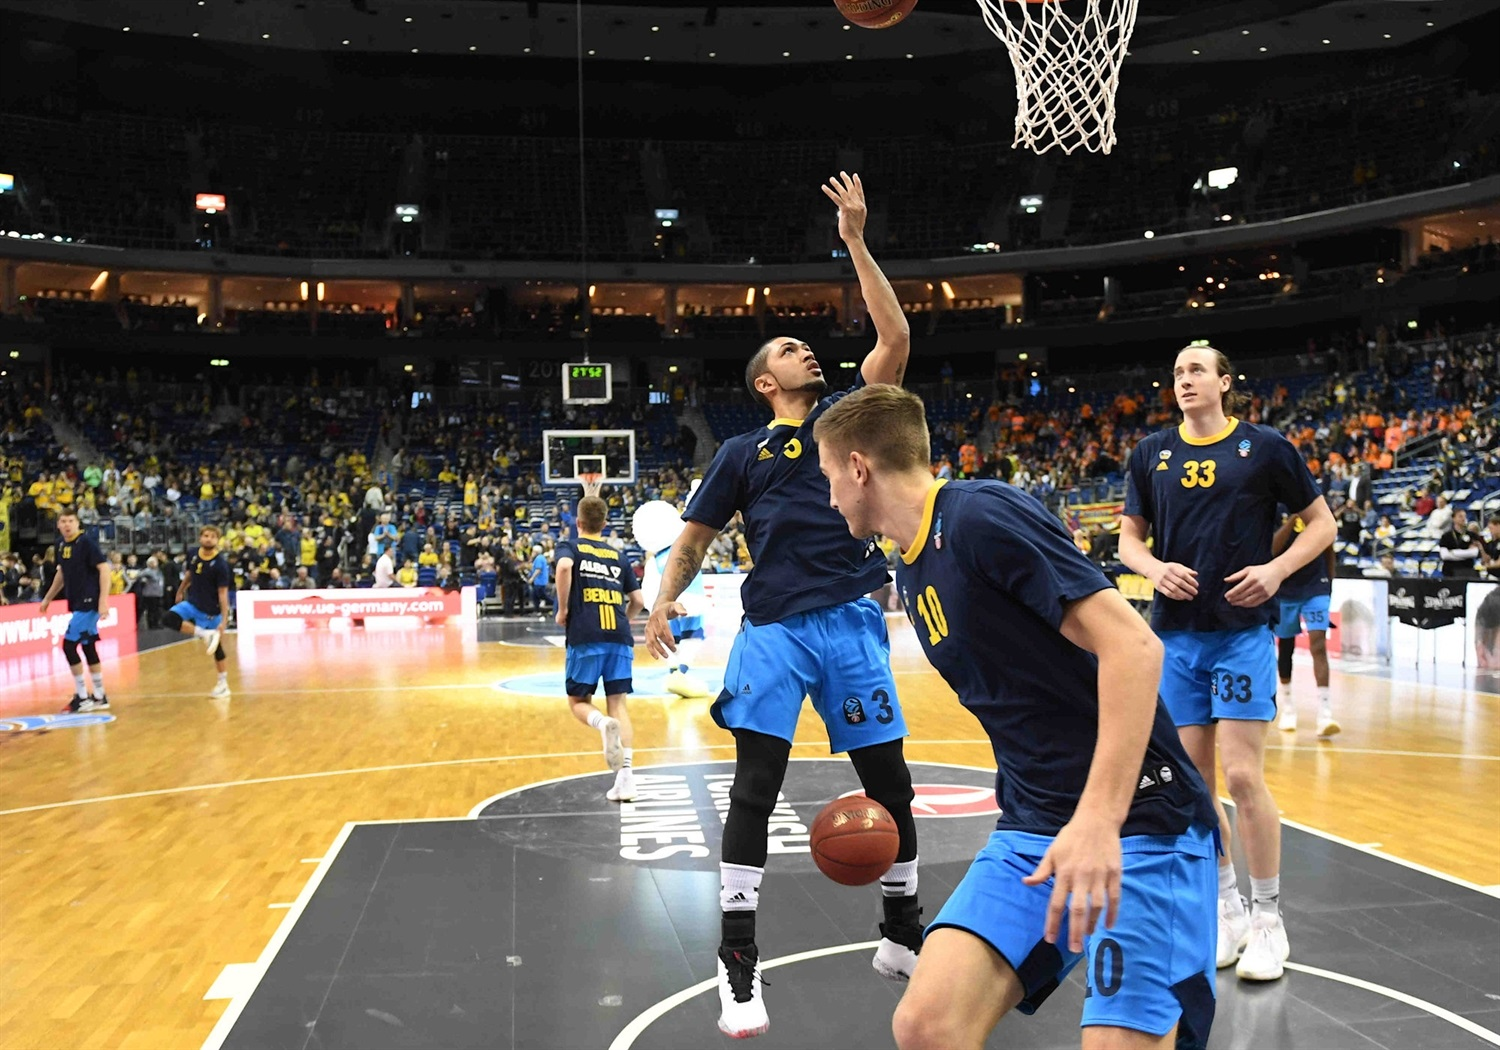 Peyton Siva - ALBA Berlin in pregame - Finals Game 2 - EC18